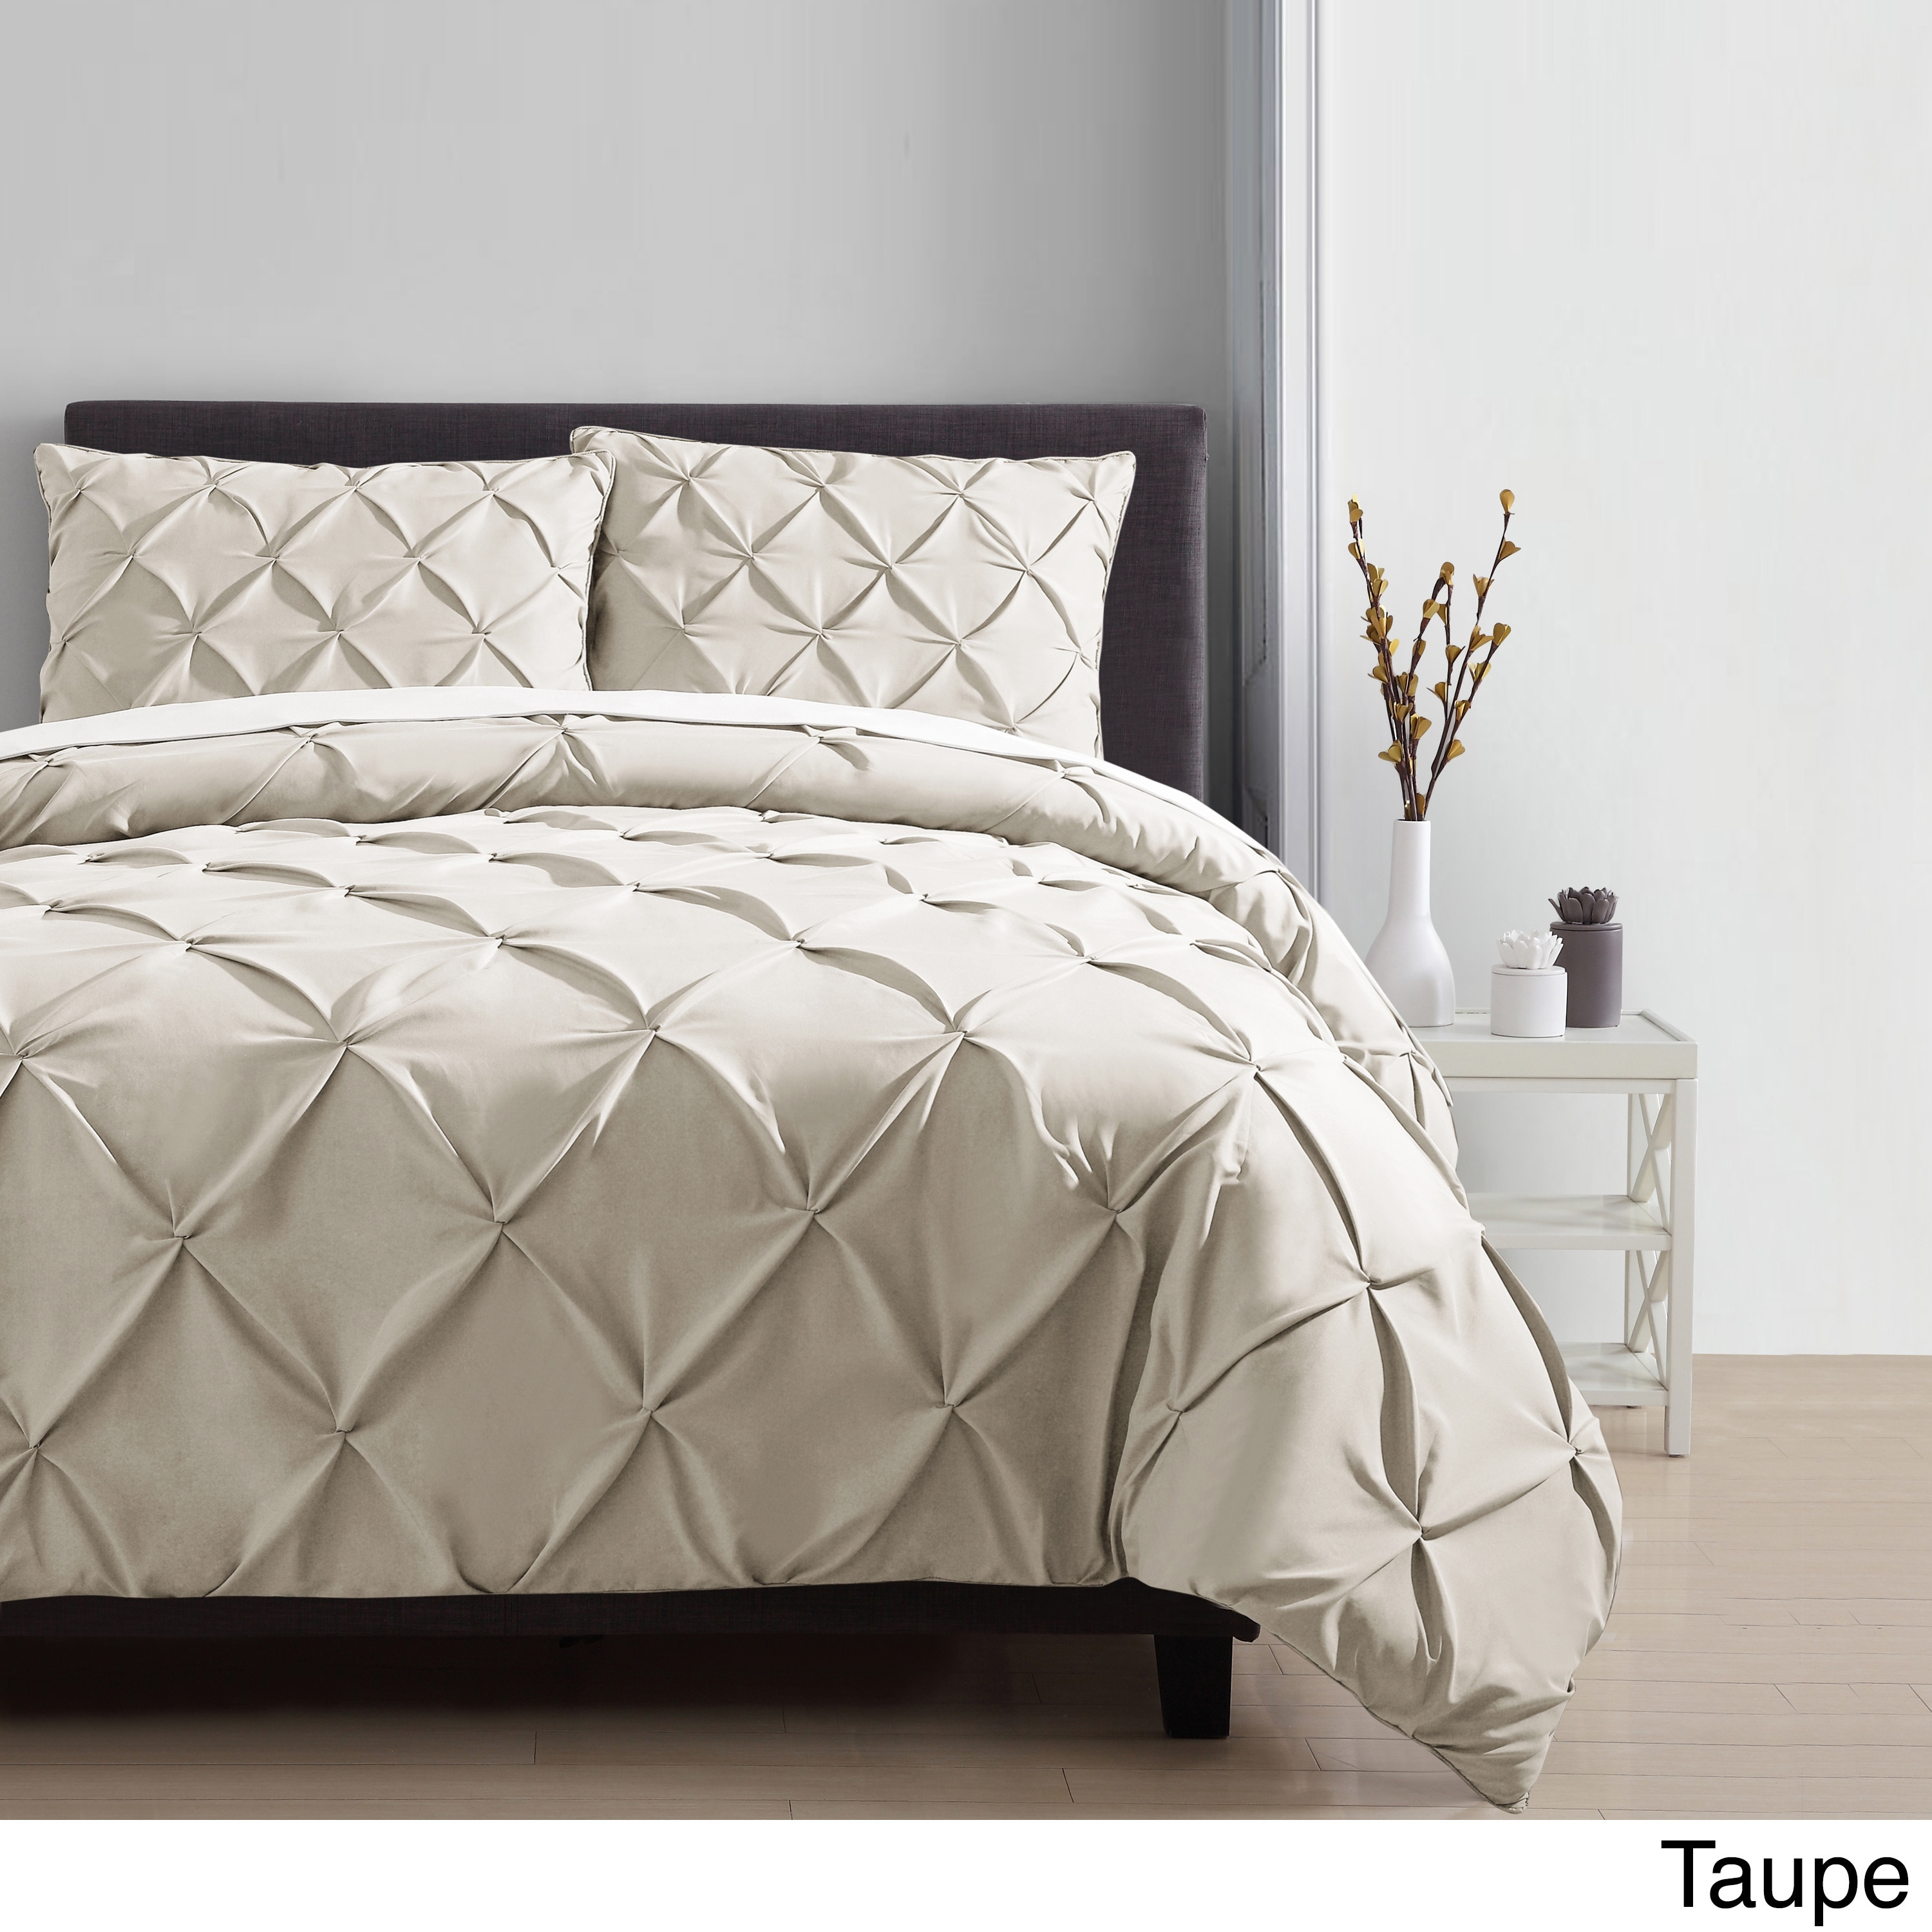 VCNY Carmen Pintuck 4 Piece Comforter Set (More Options Available)